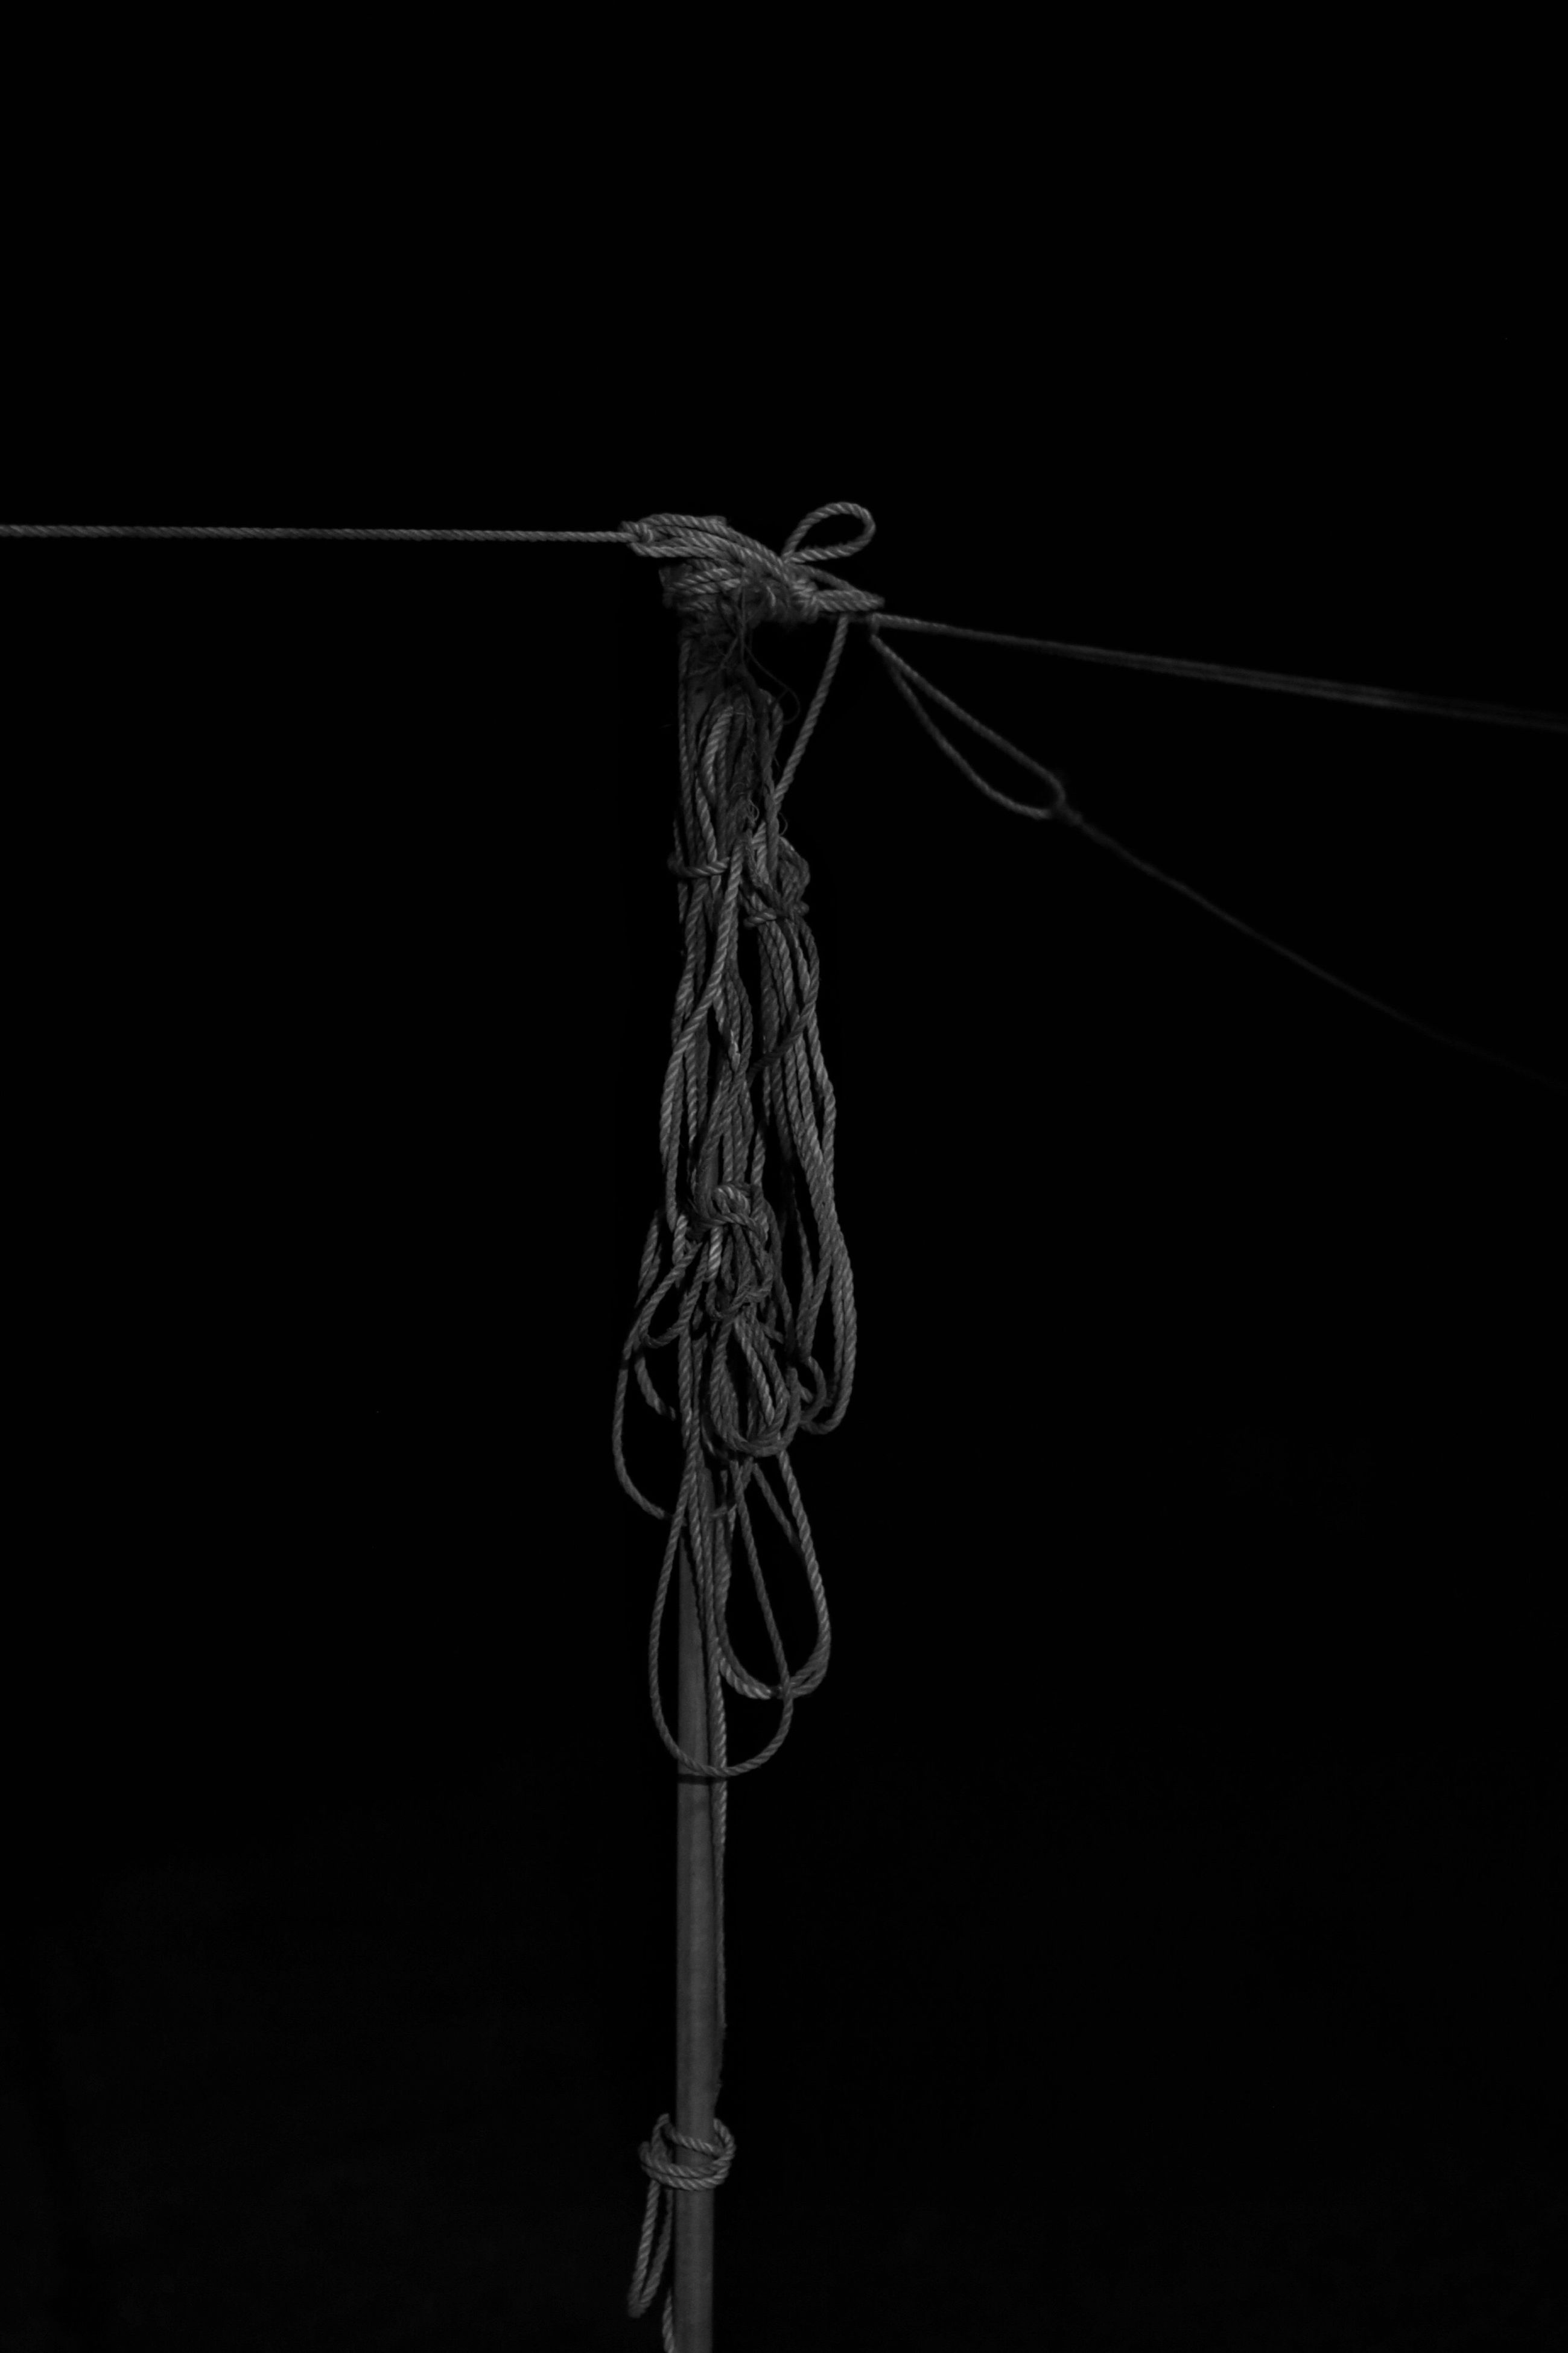 copy space, black background, studio shot, night, close-up, art and craft, creativity, art, no people, low angle view, rope, dark, electricity, clear sky, outdoors, metal, pole, single object, hanging, still life